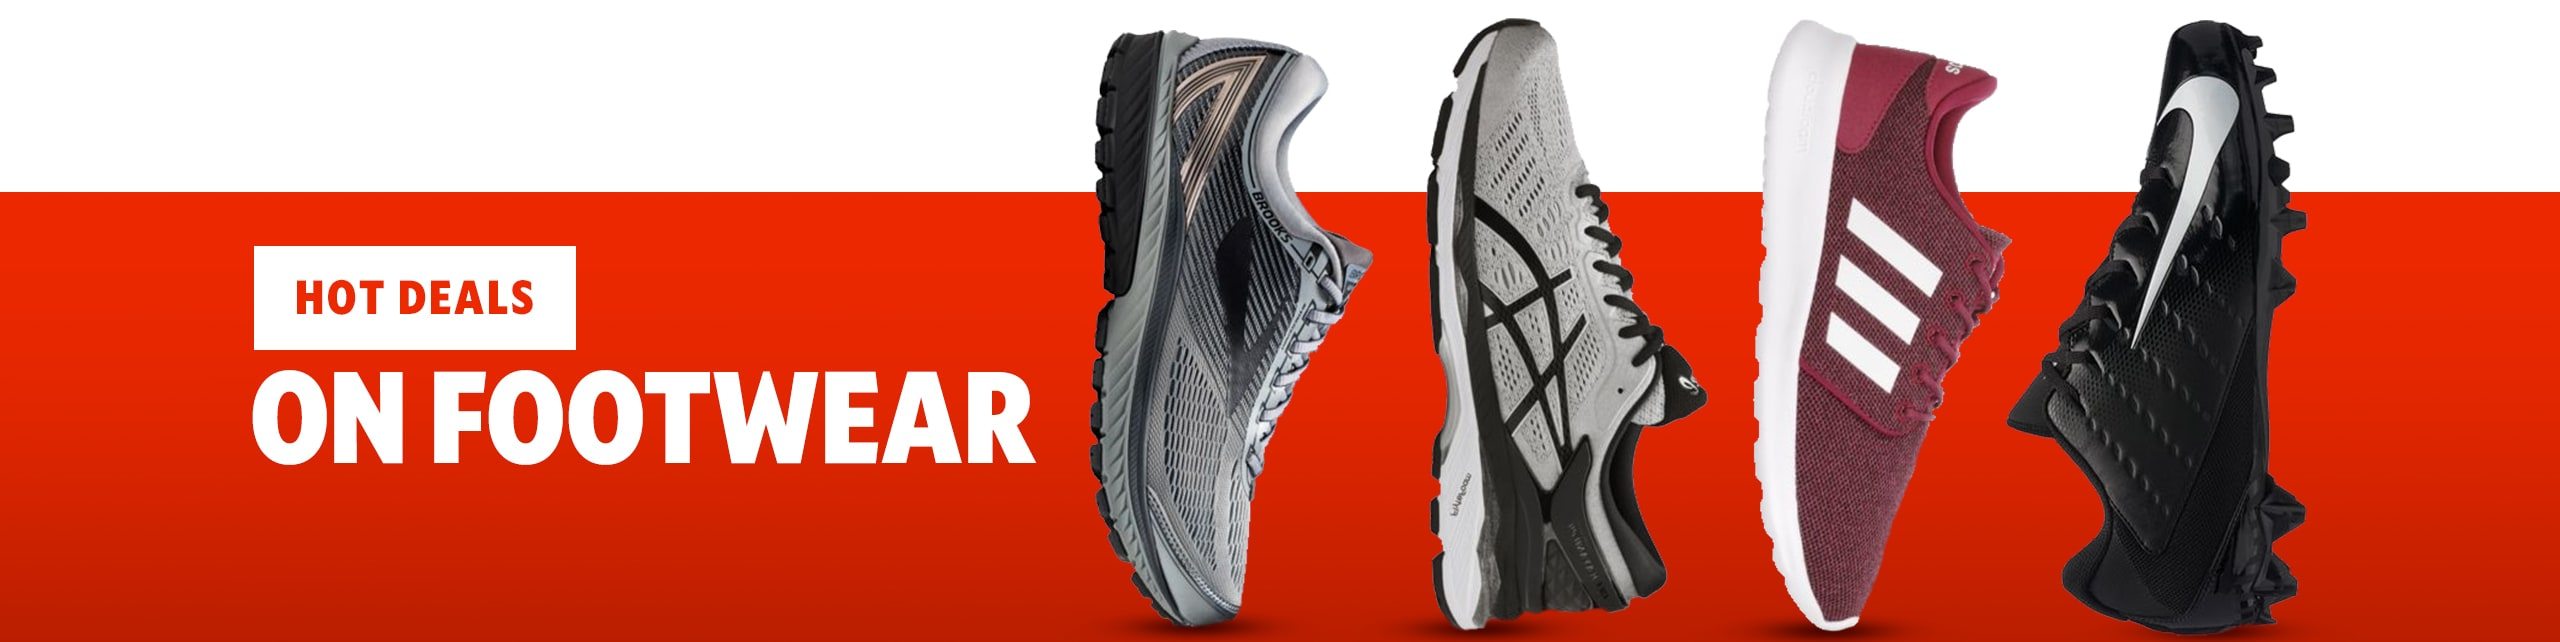 Hot Deals On footwear, Includes Top Brands Under Armour, Nike, and adidas.